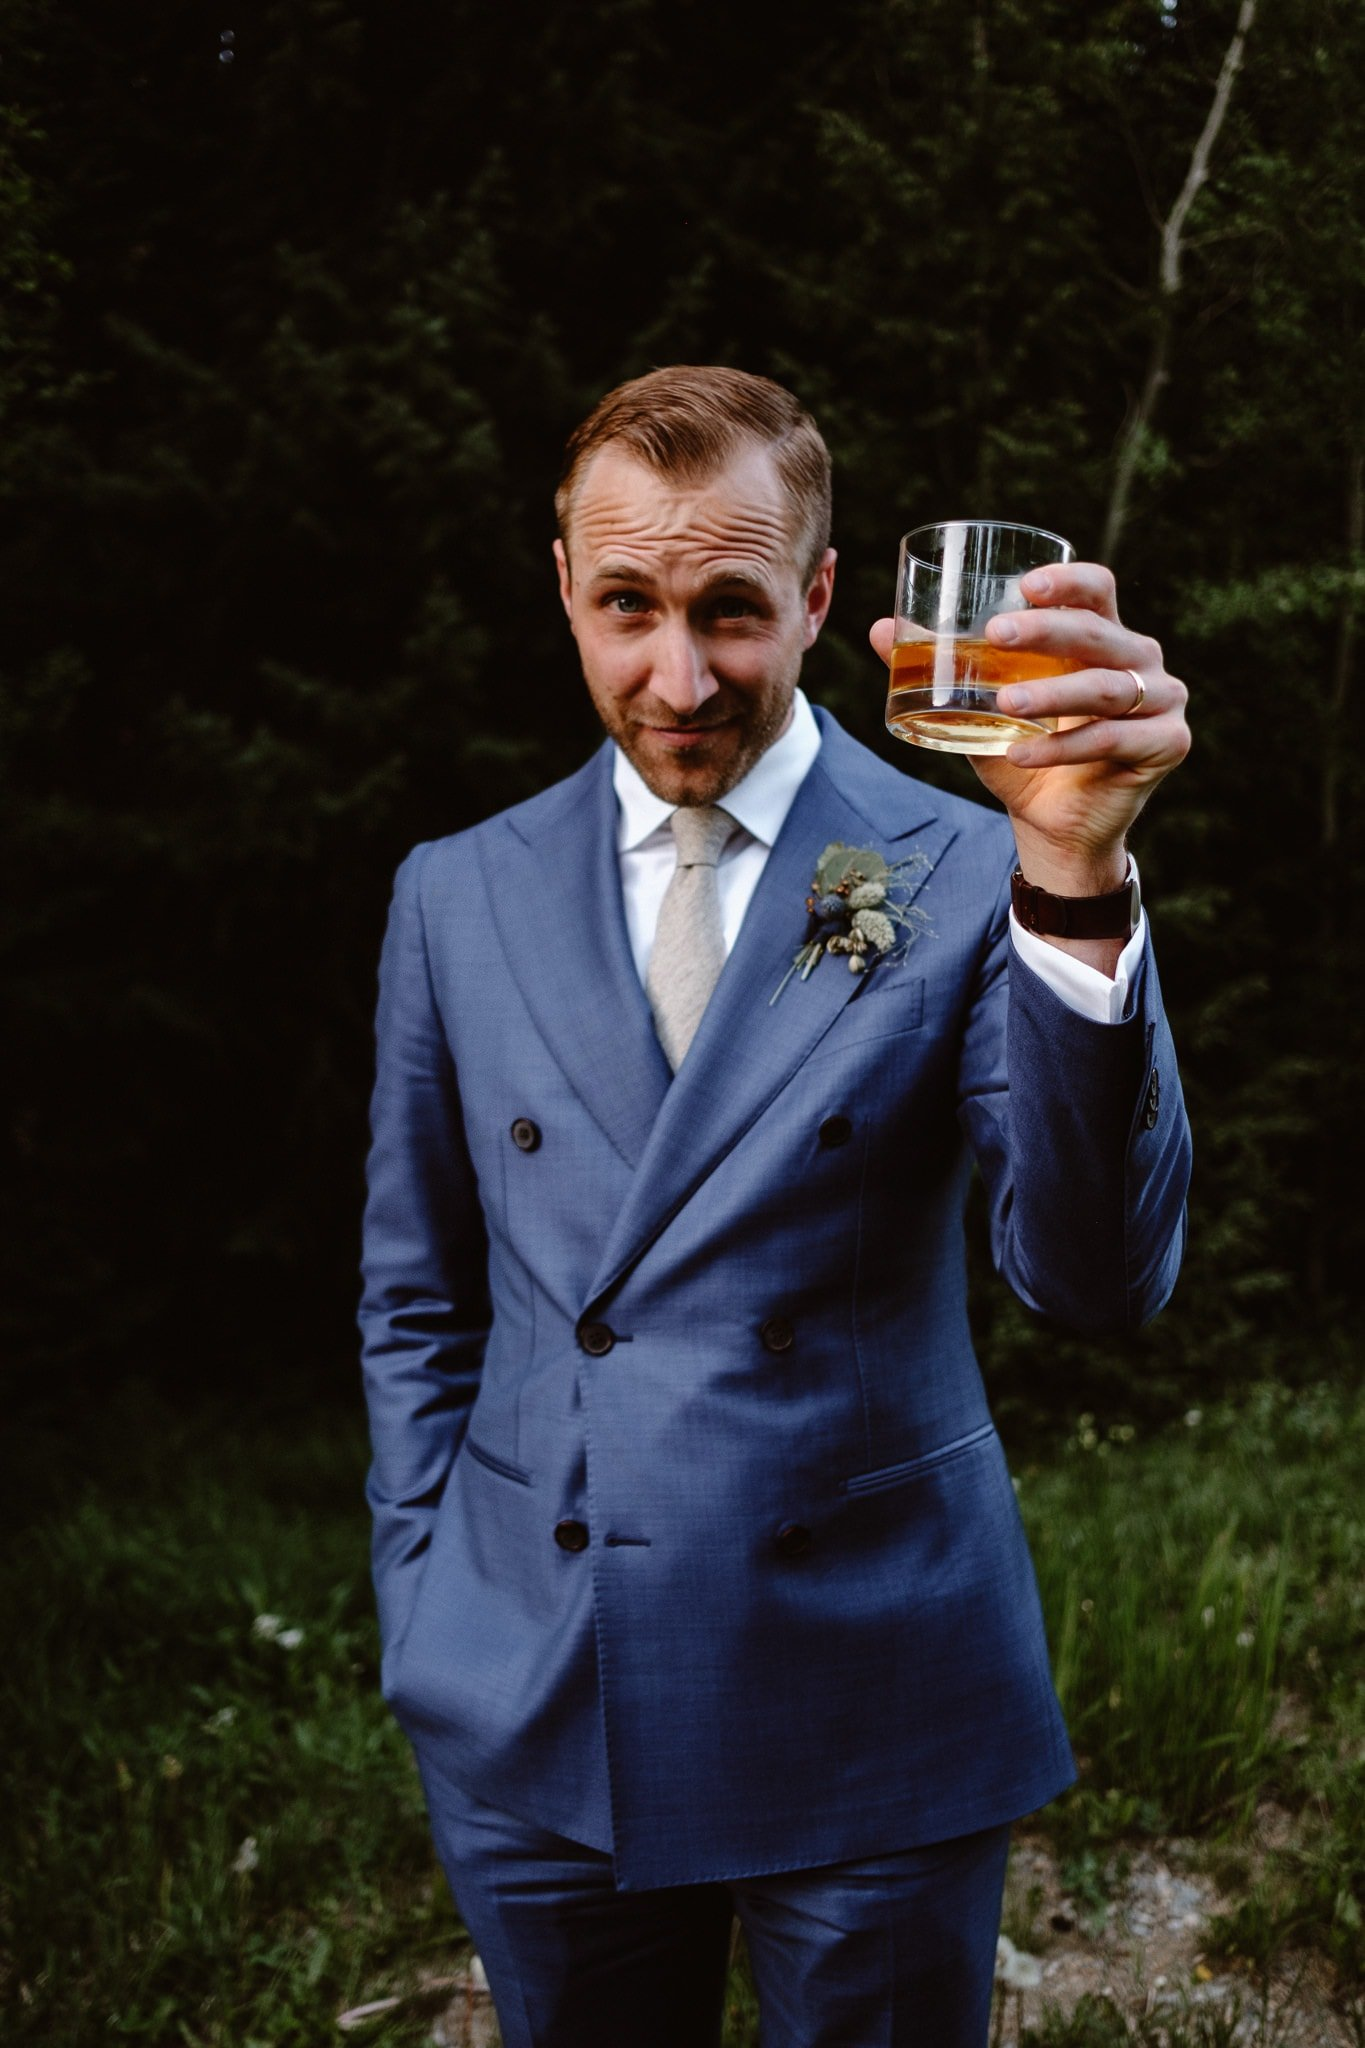 Groom in blue suit holding whiskey glass at Breckenridge Nordic Center wedding, Summit County wedding photographer